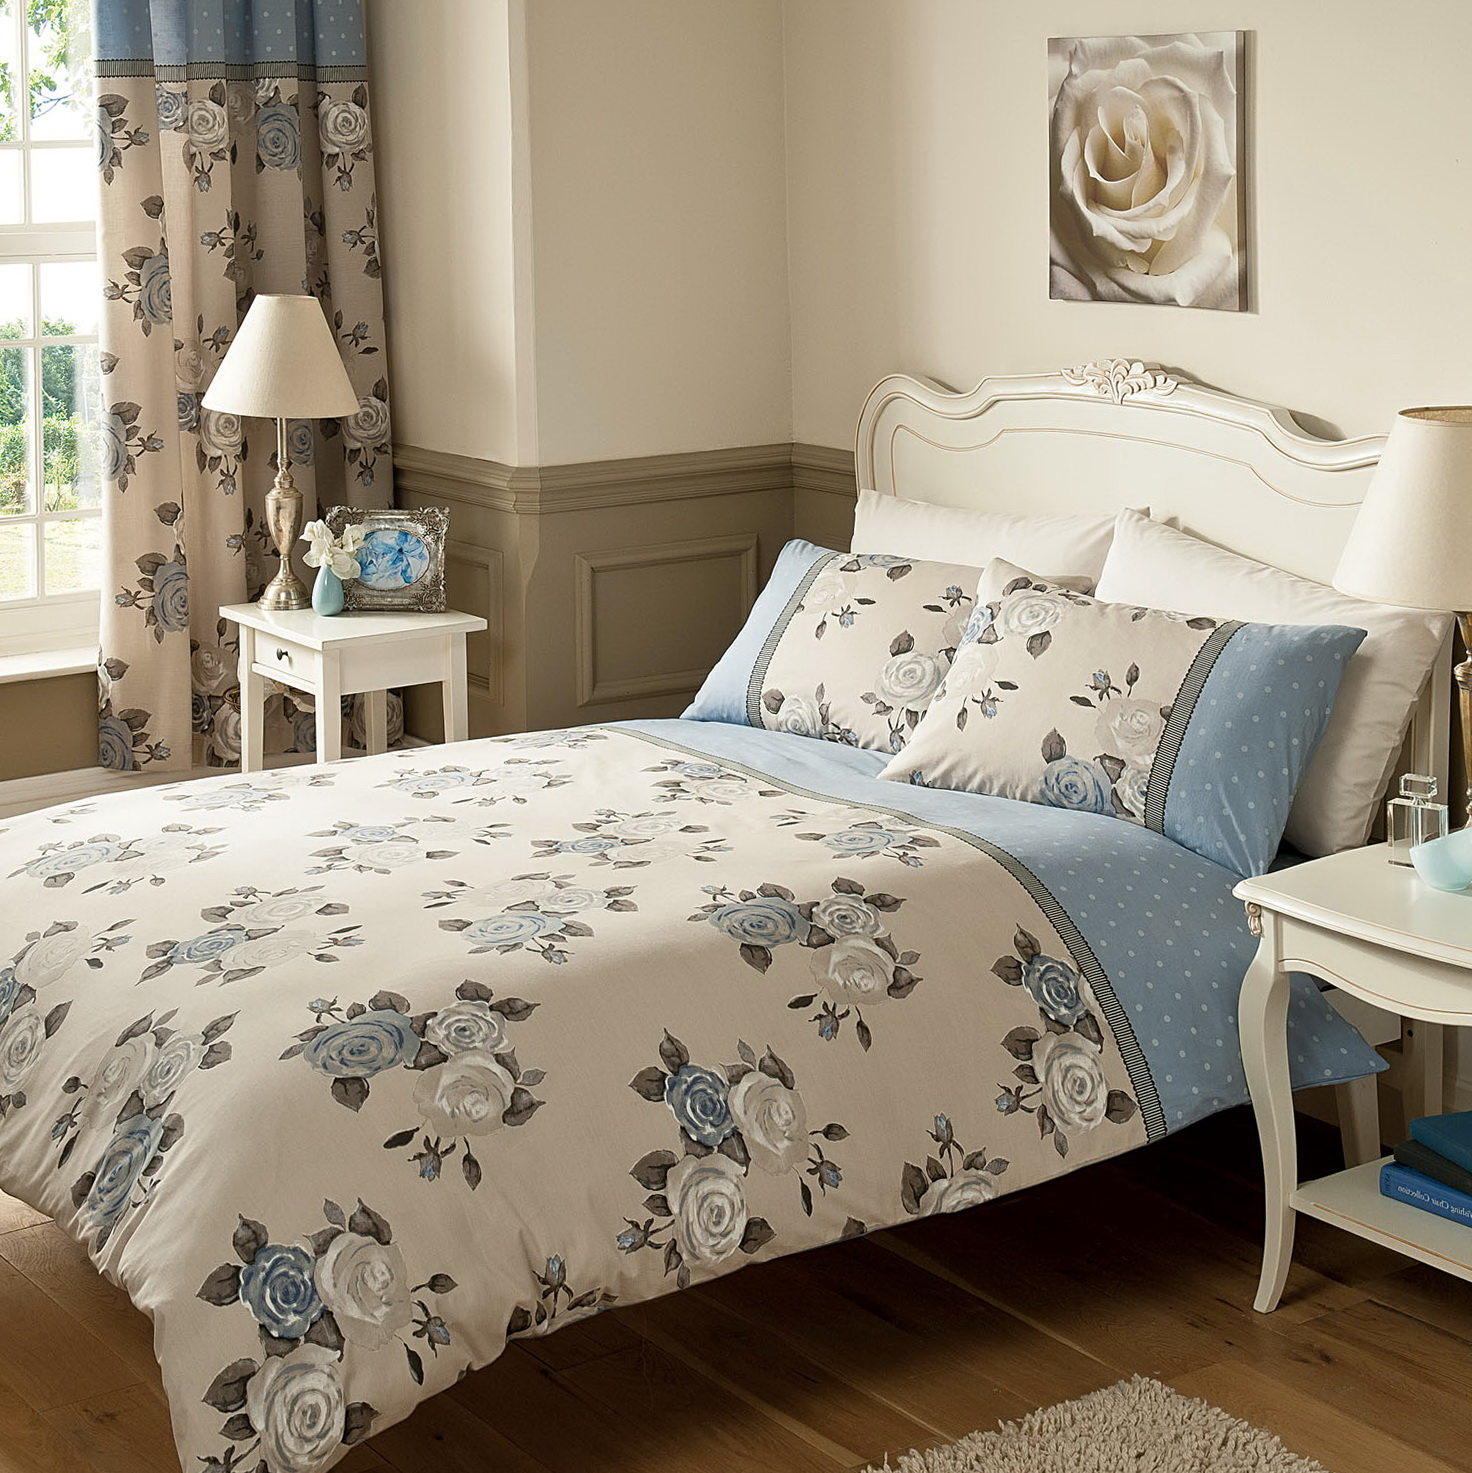 Bedding And Curtain Sets To Match Home Design Ideas